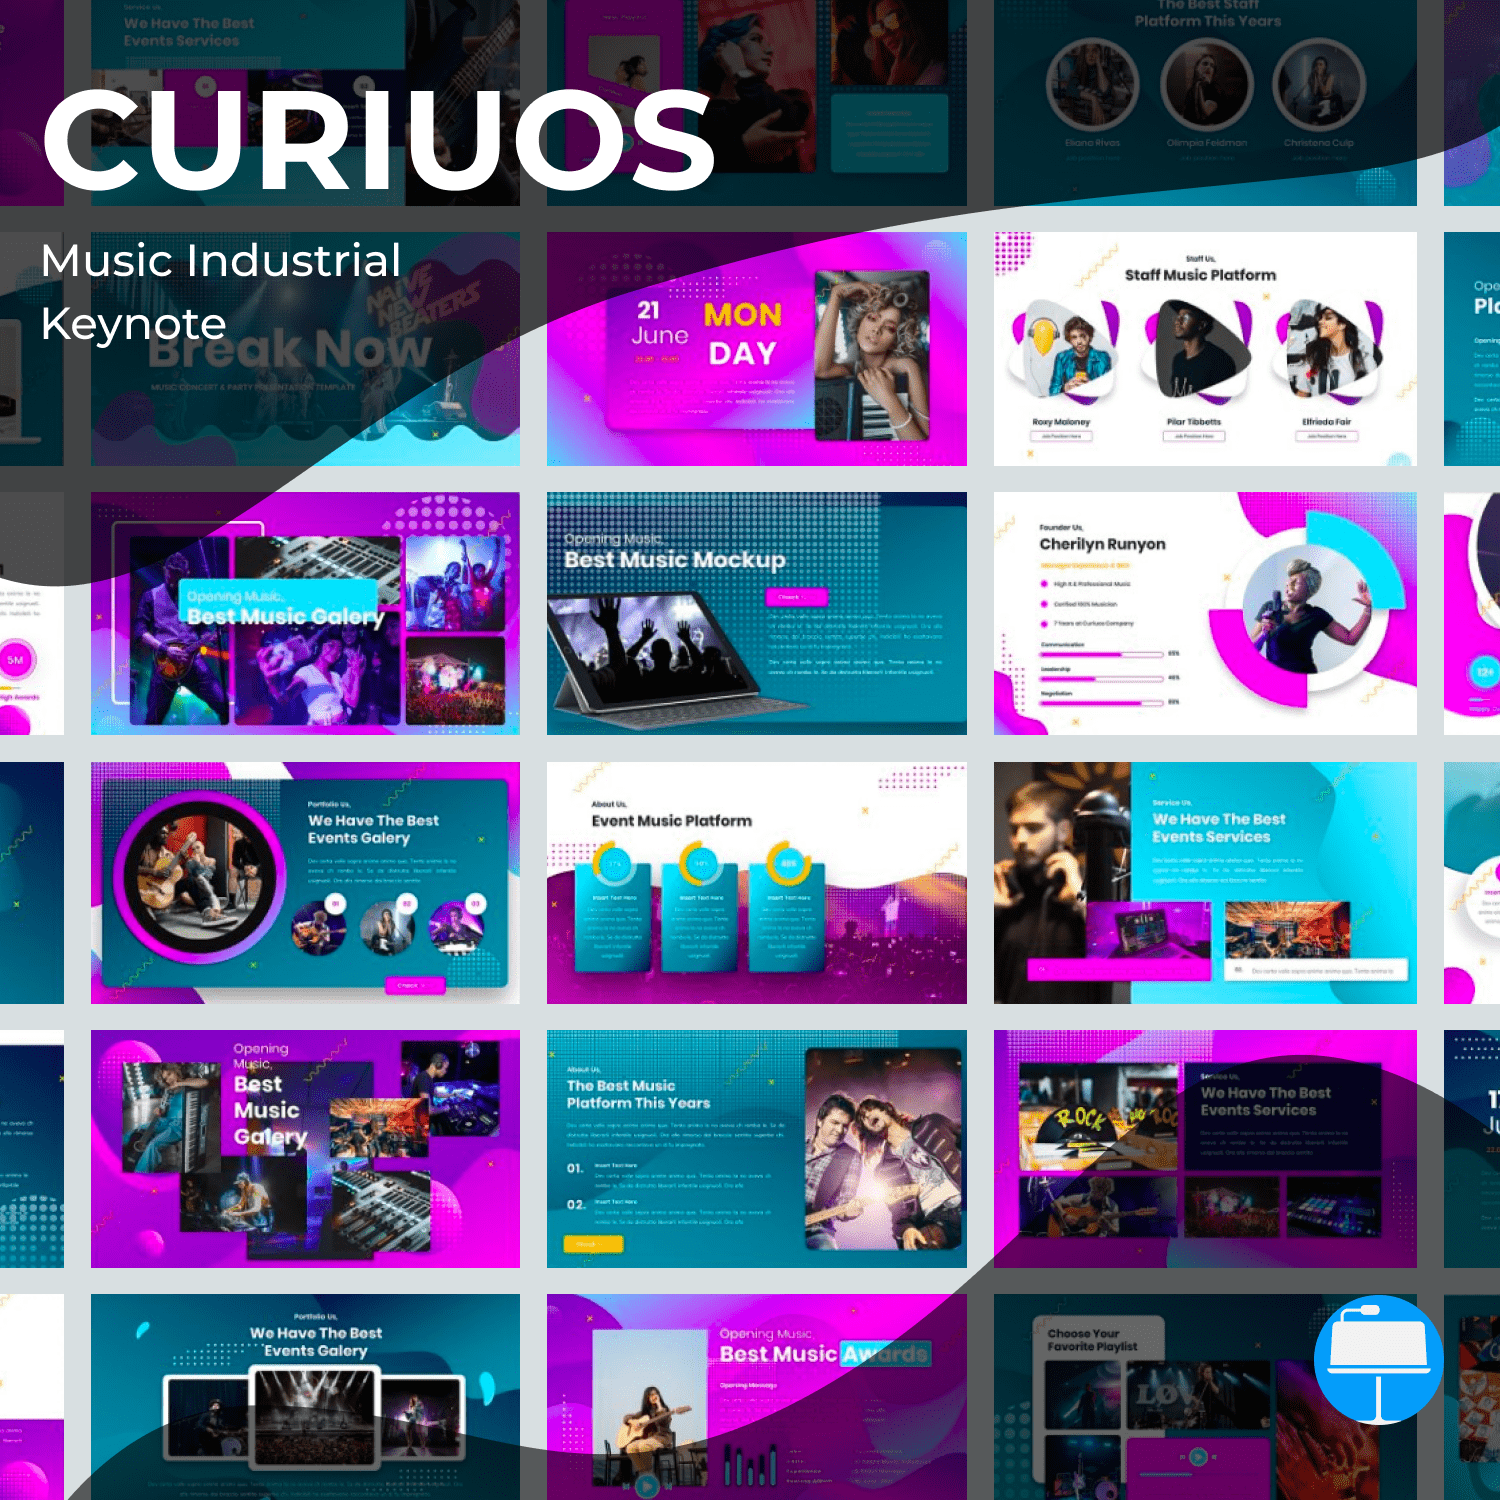 Curiuos - Music Industrial Keynote main cover.